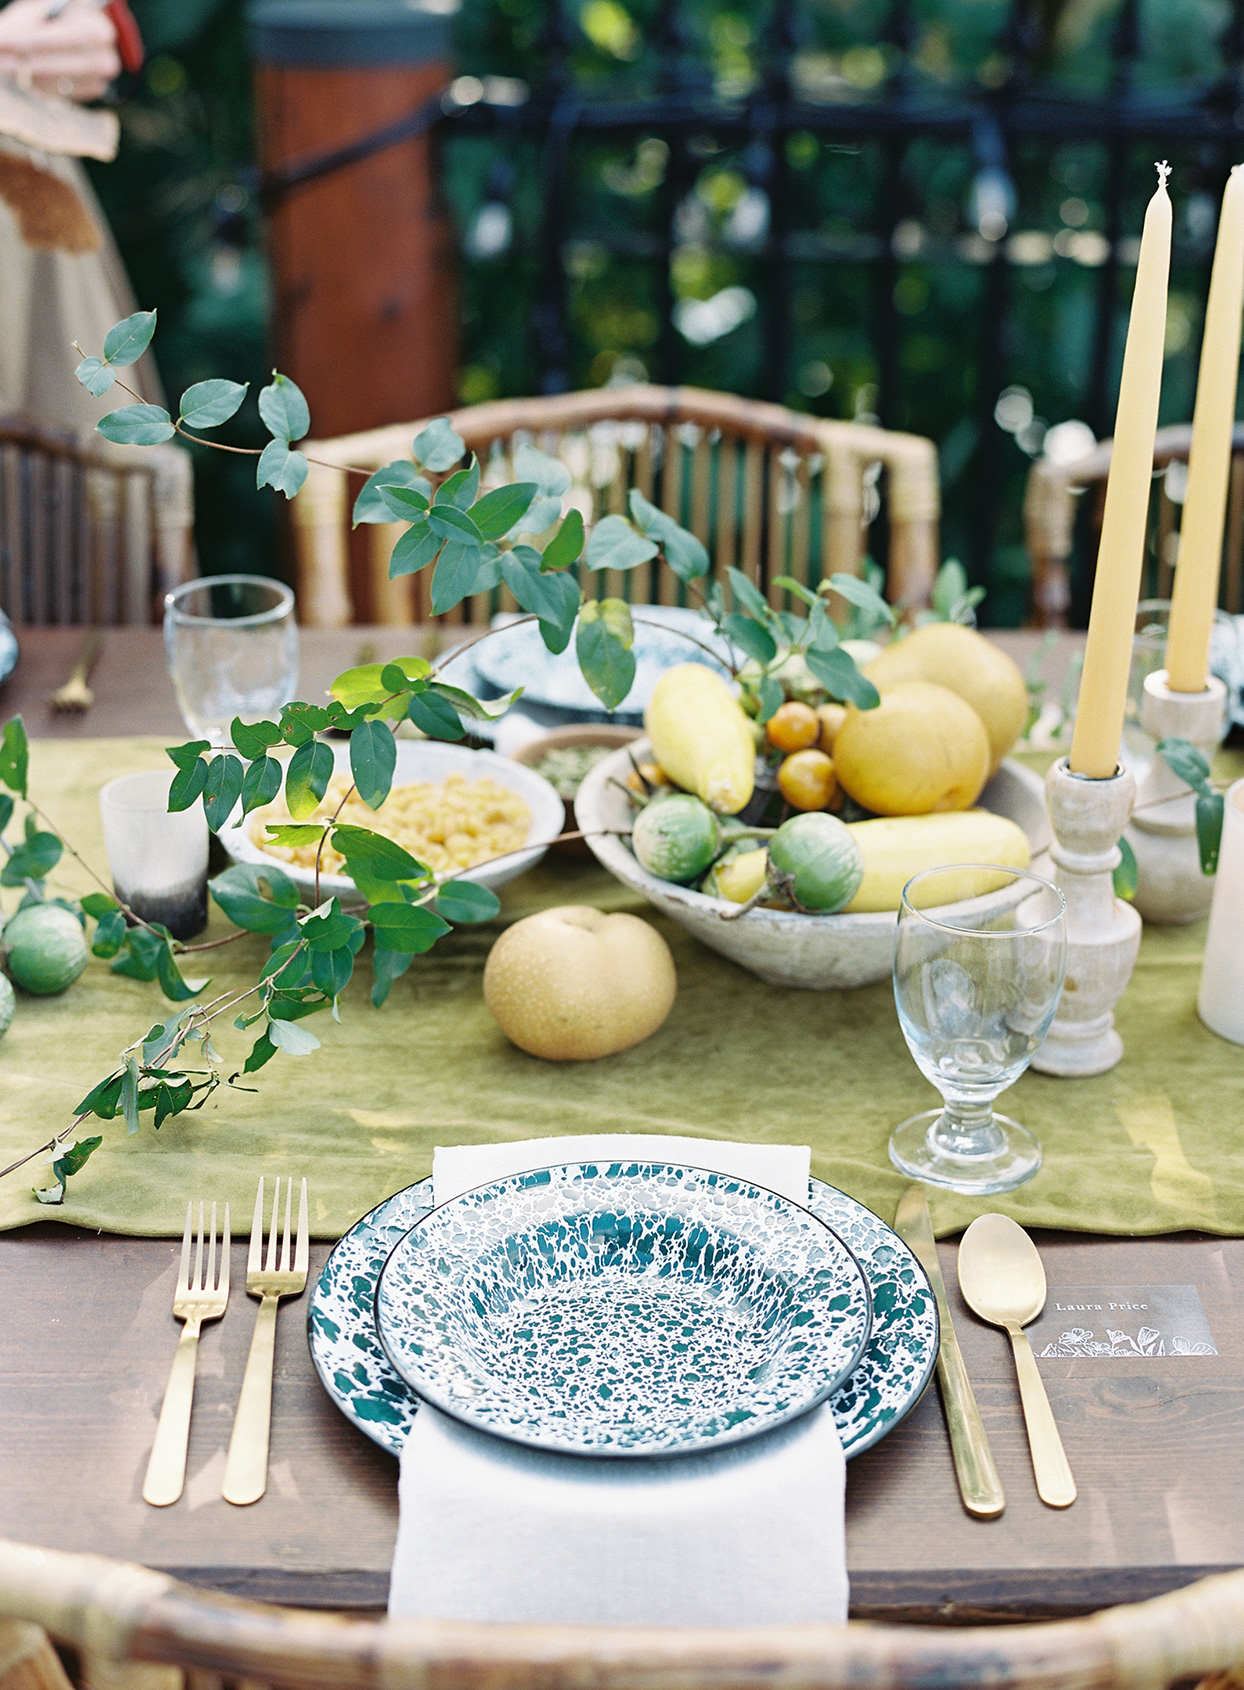 splattered place settings with gold silverware